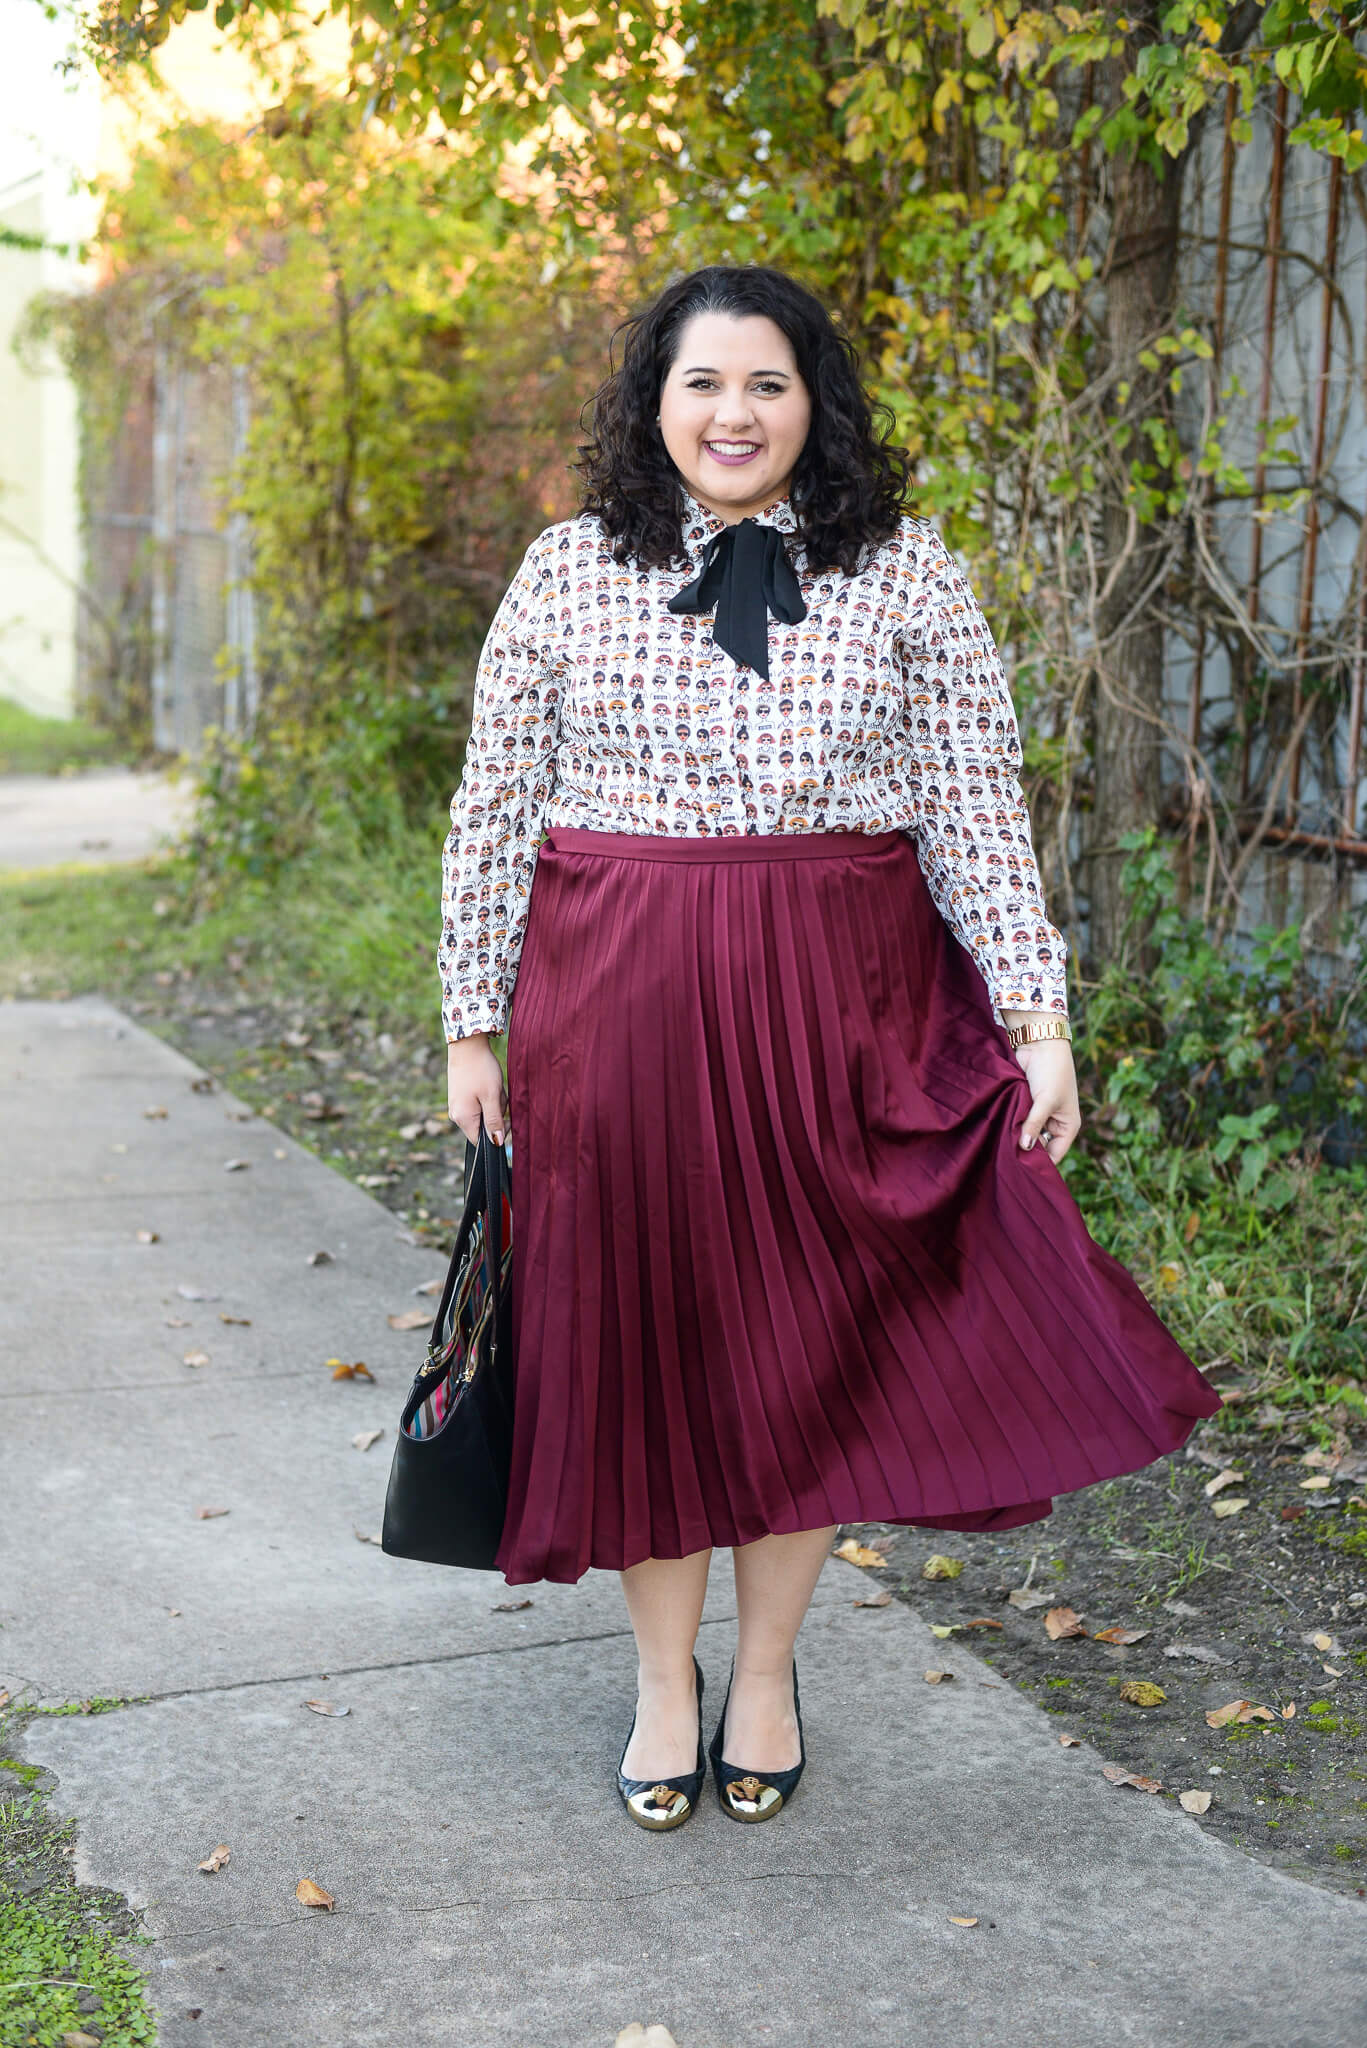 Finding a style at work can be difficult sometimes but a good colorful basic, like this pleated maroon skirt is a staple in every career woman's wardrobe.